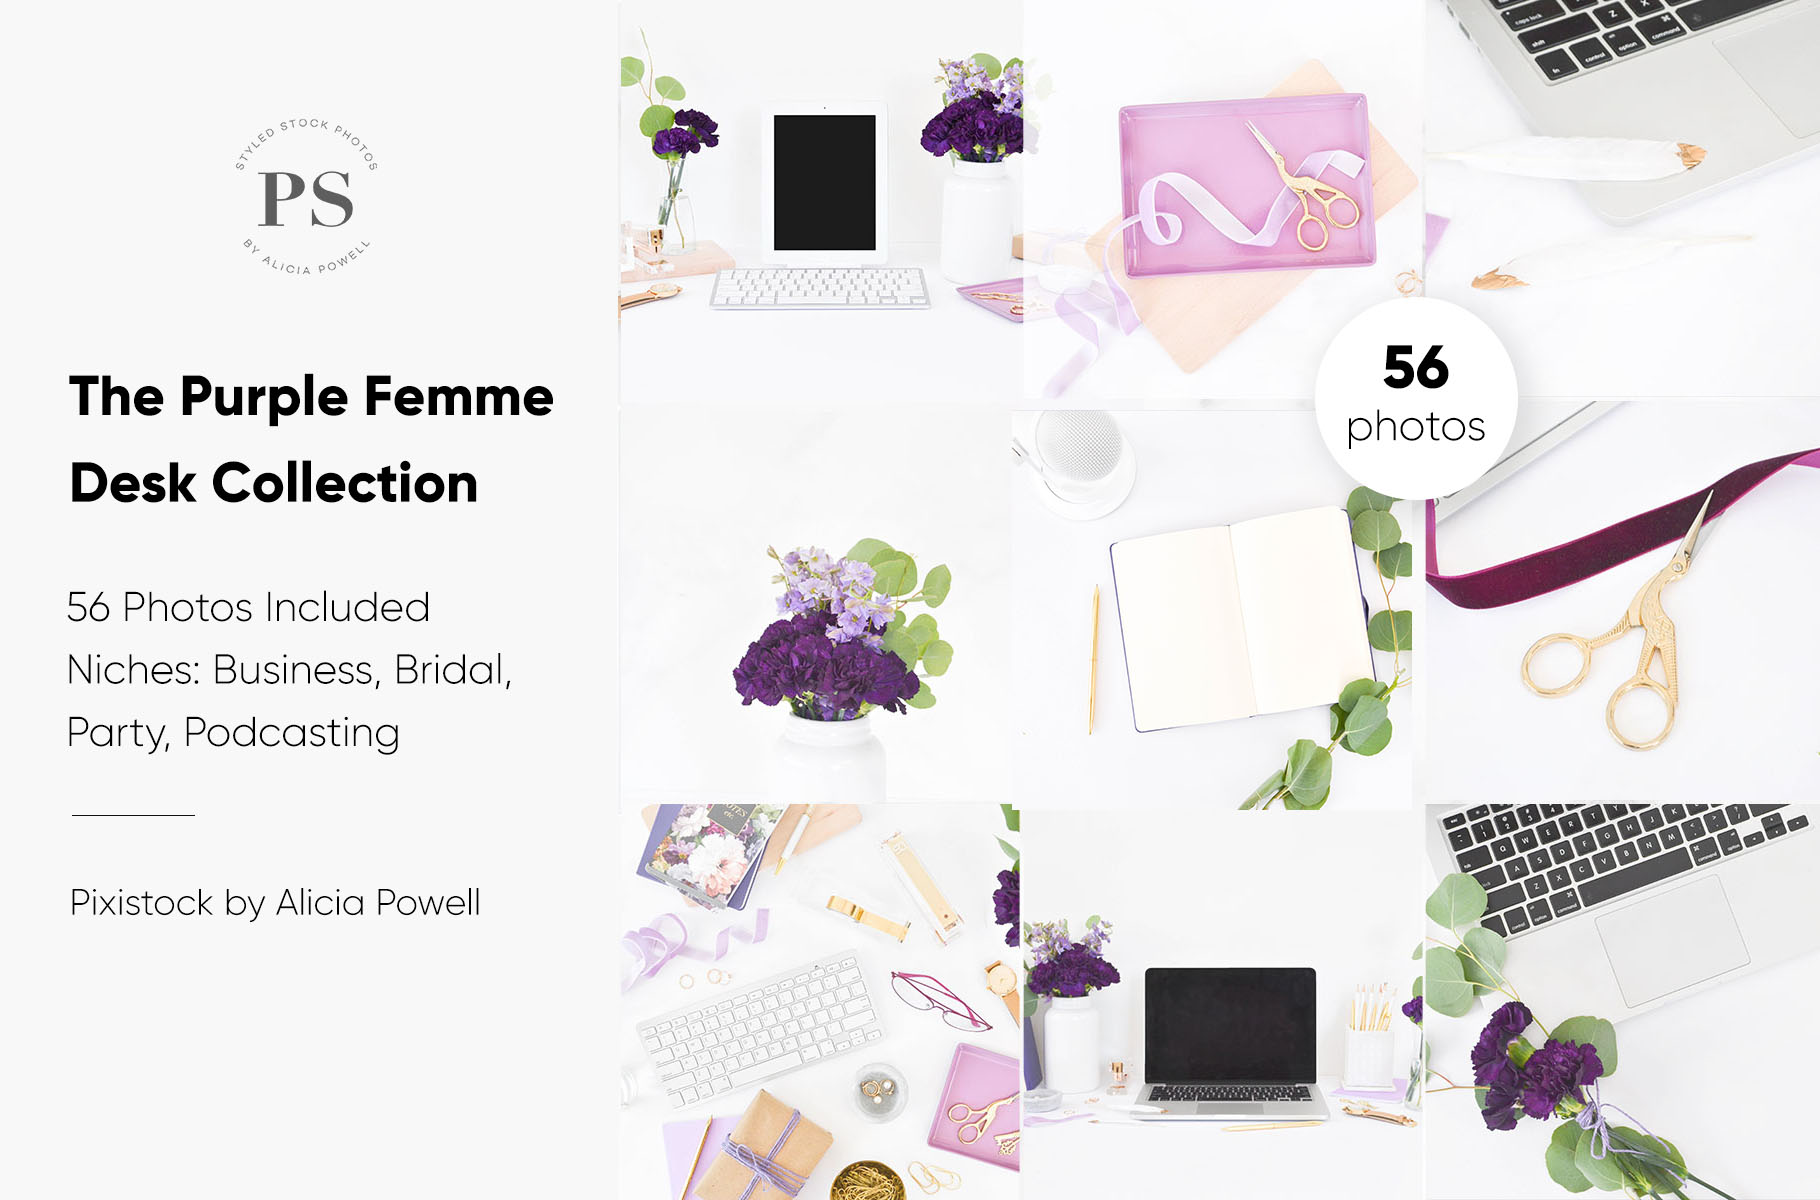 Purple Femme Stock Photo Collection